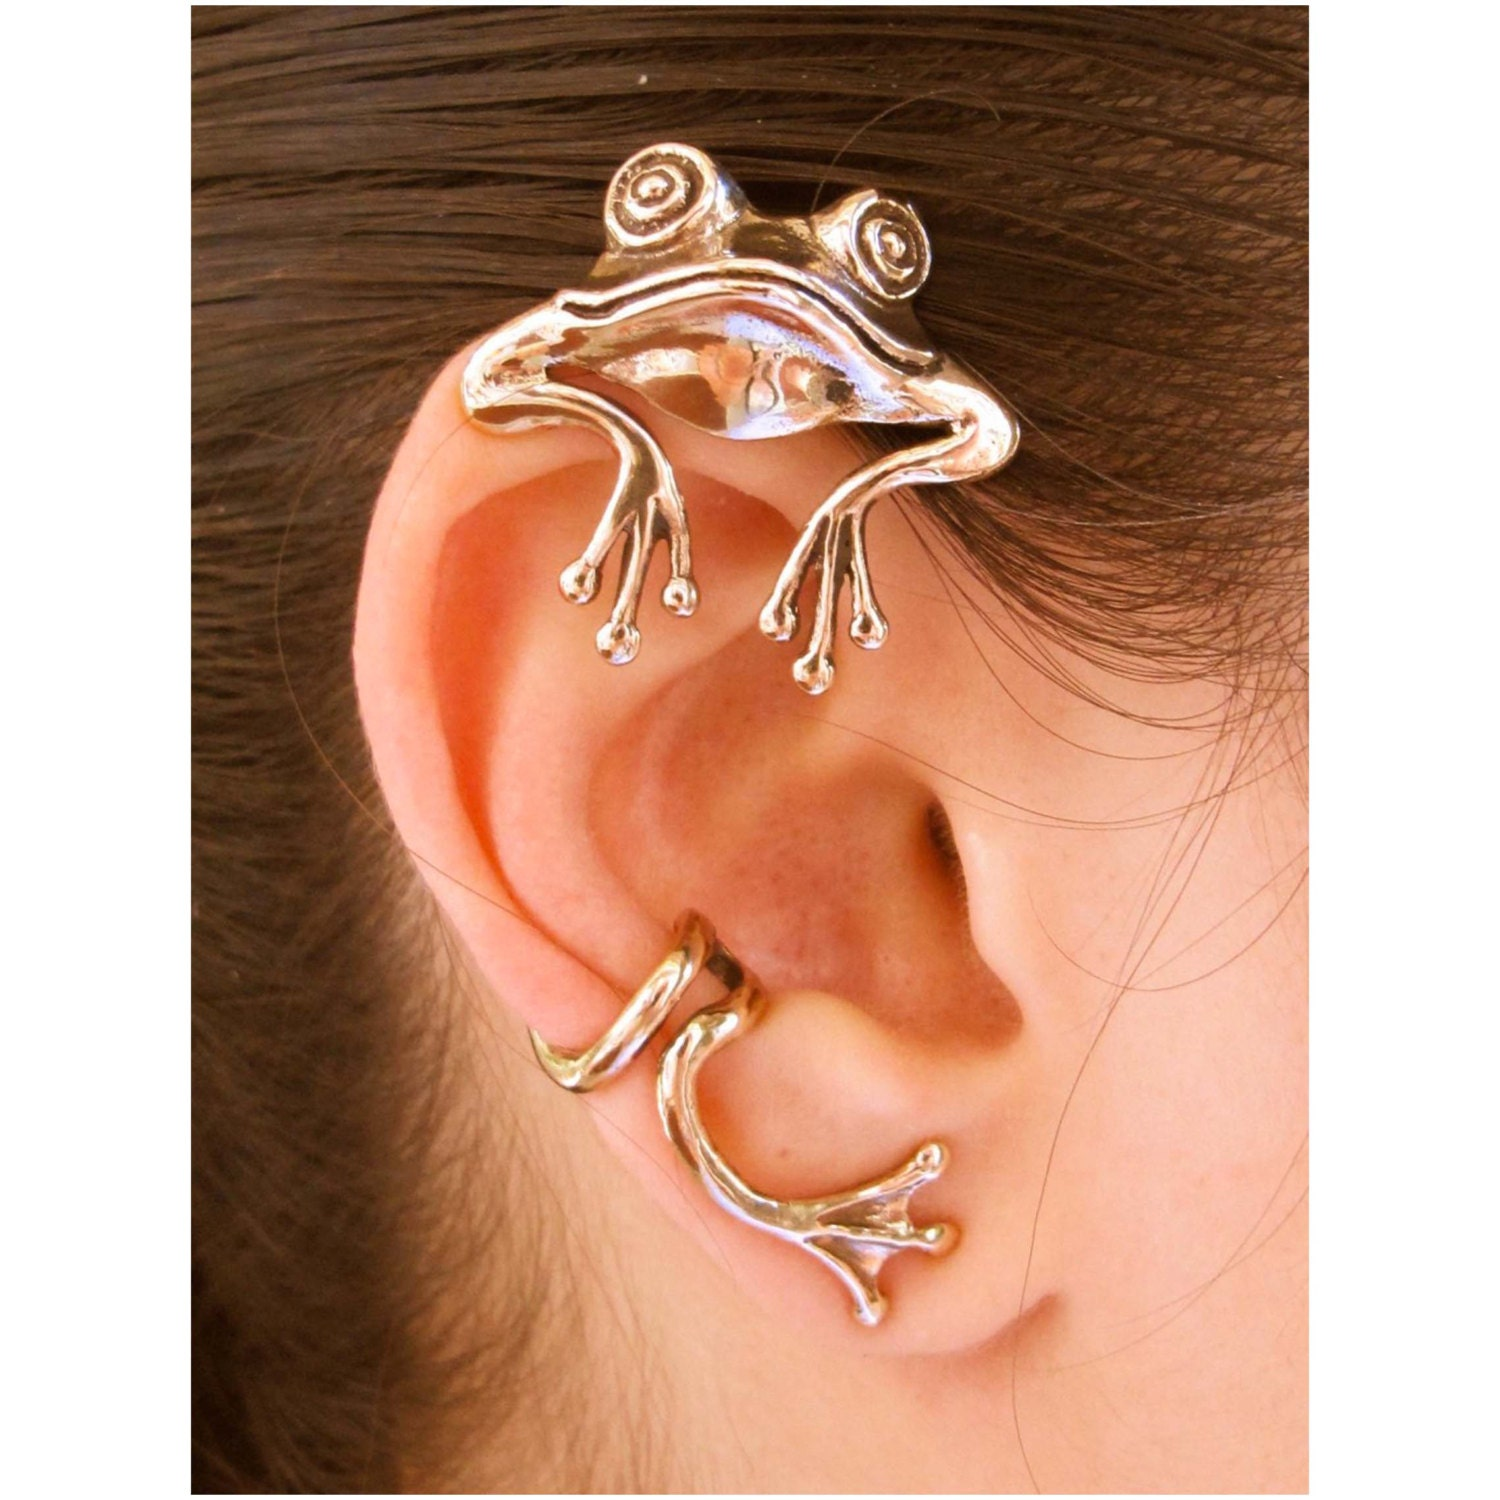 Frog Ear Wrap Frog Ear Cuff Bronze Curious Frog Ear Wrap